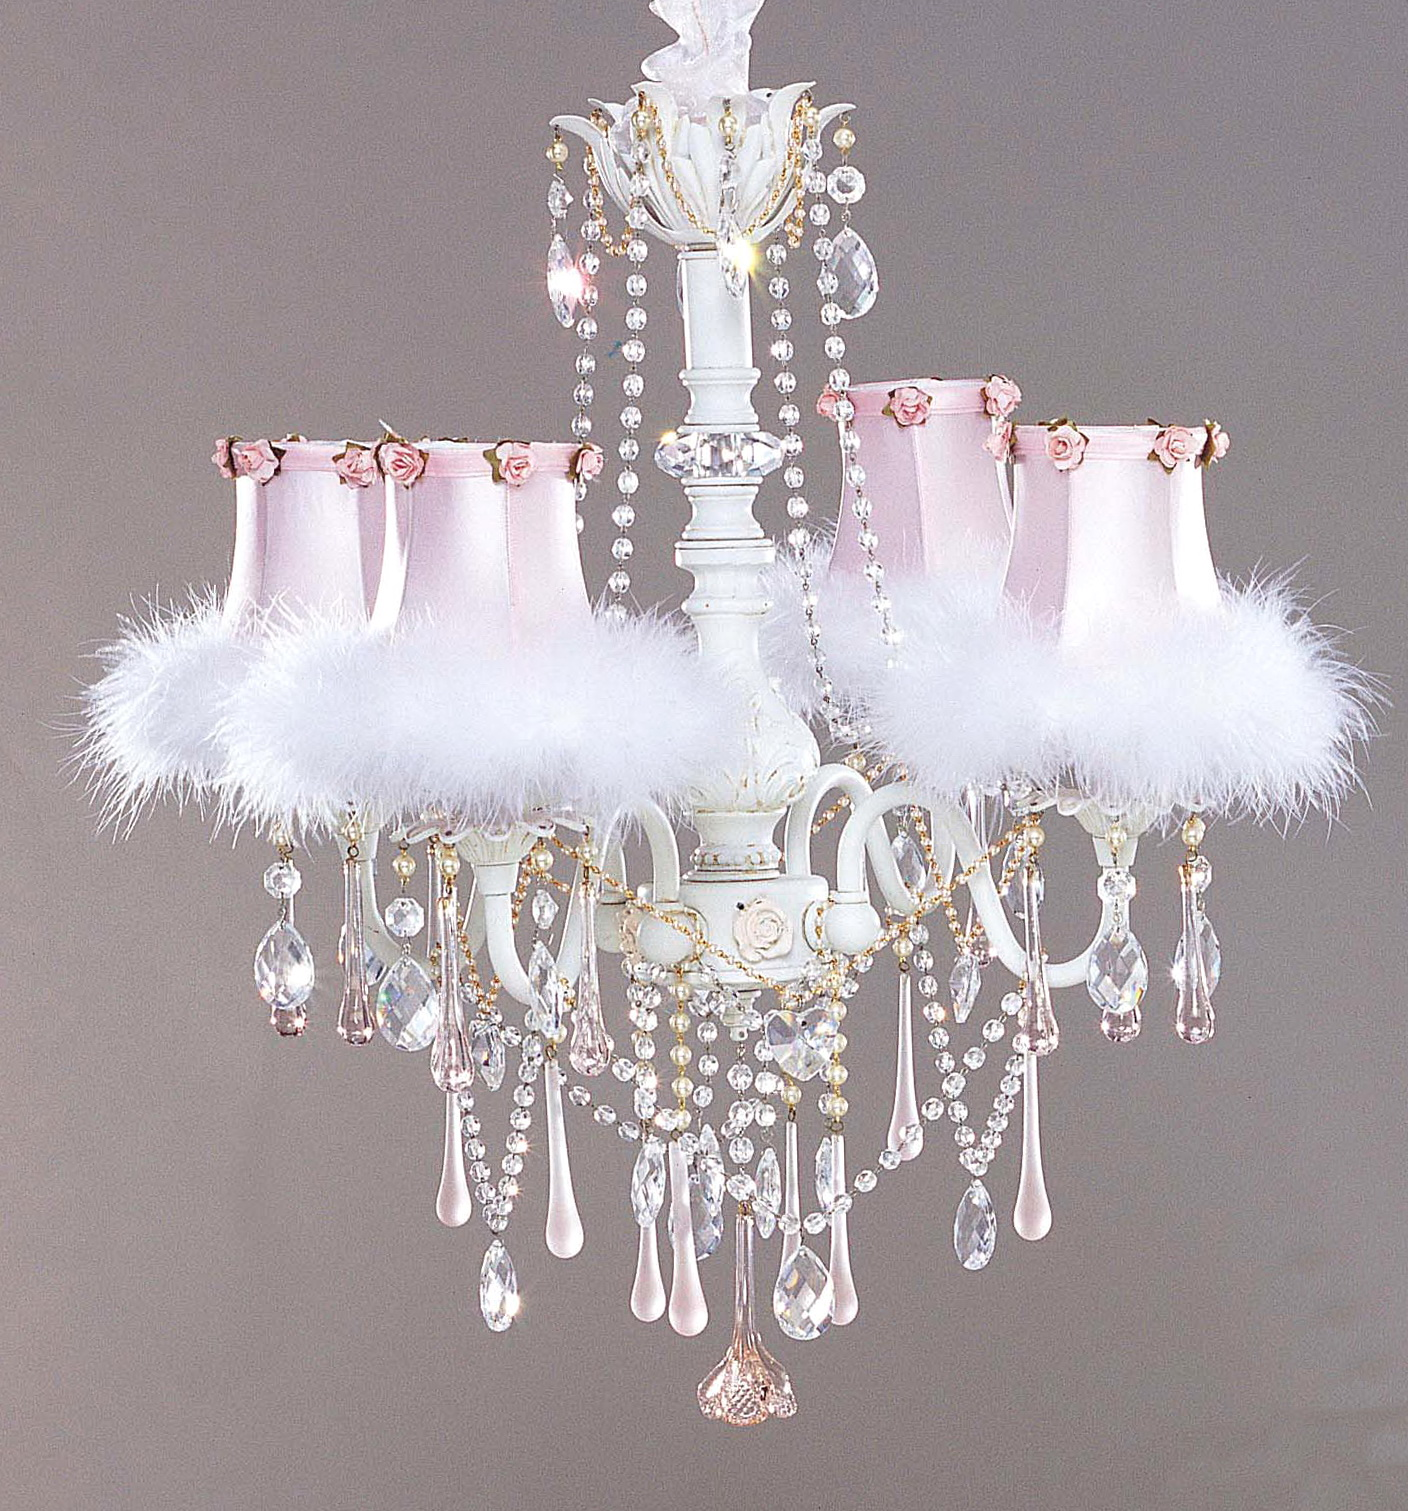 Shabby chic chandeliers cheap home design ideas - Inexpensive chandeliers for bedroom ...